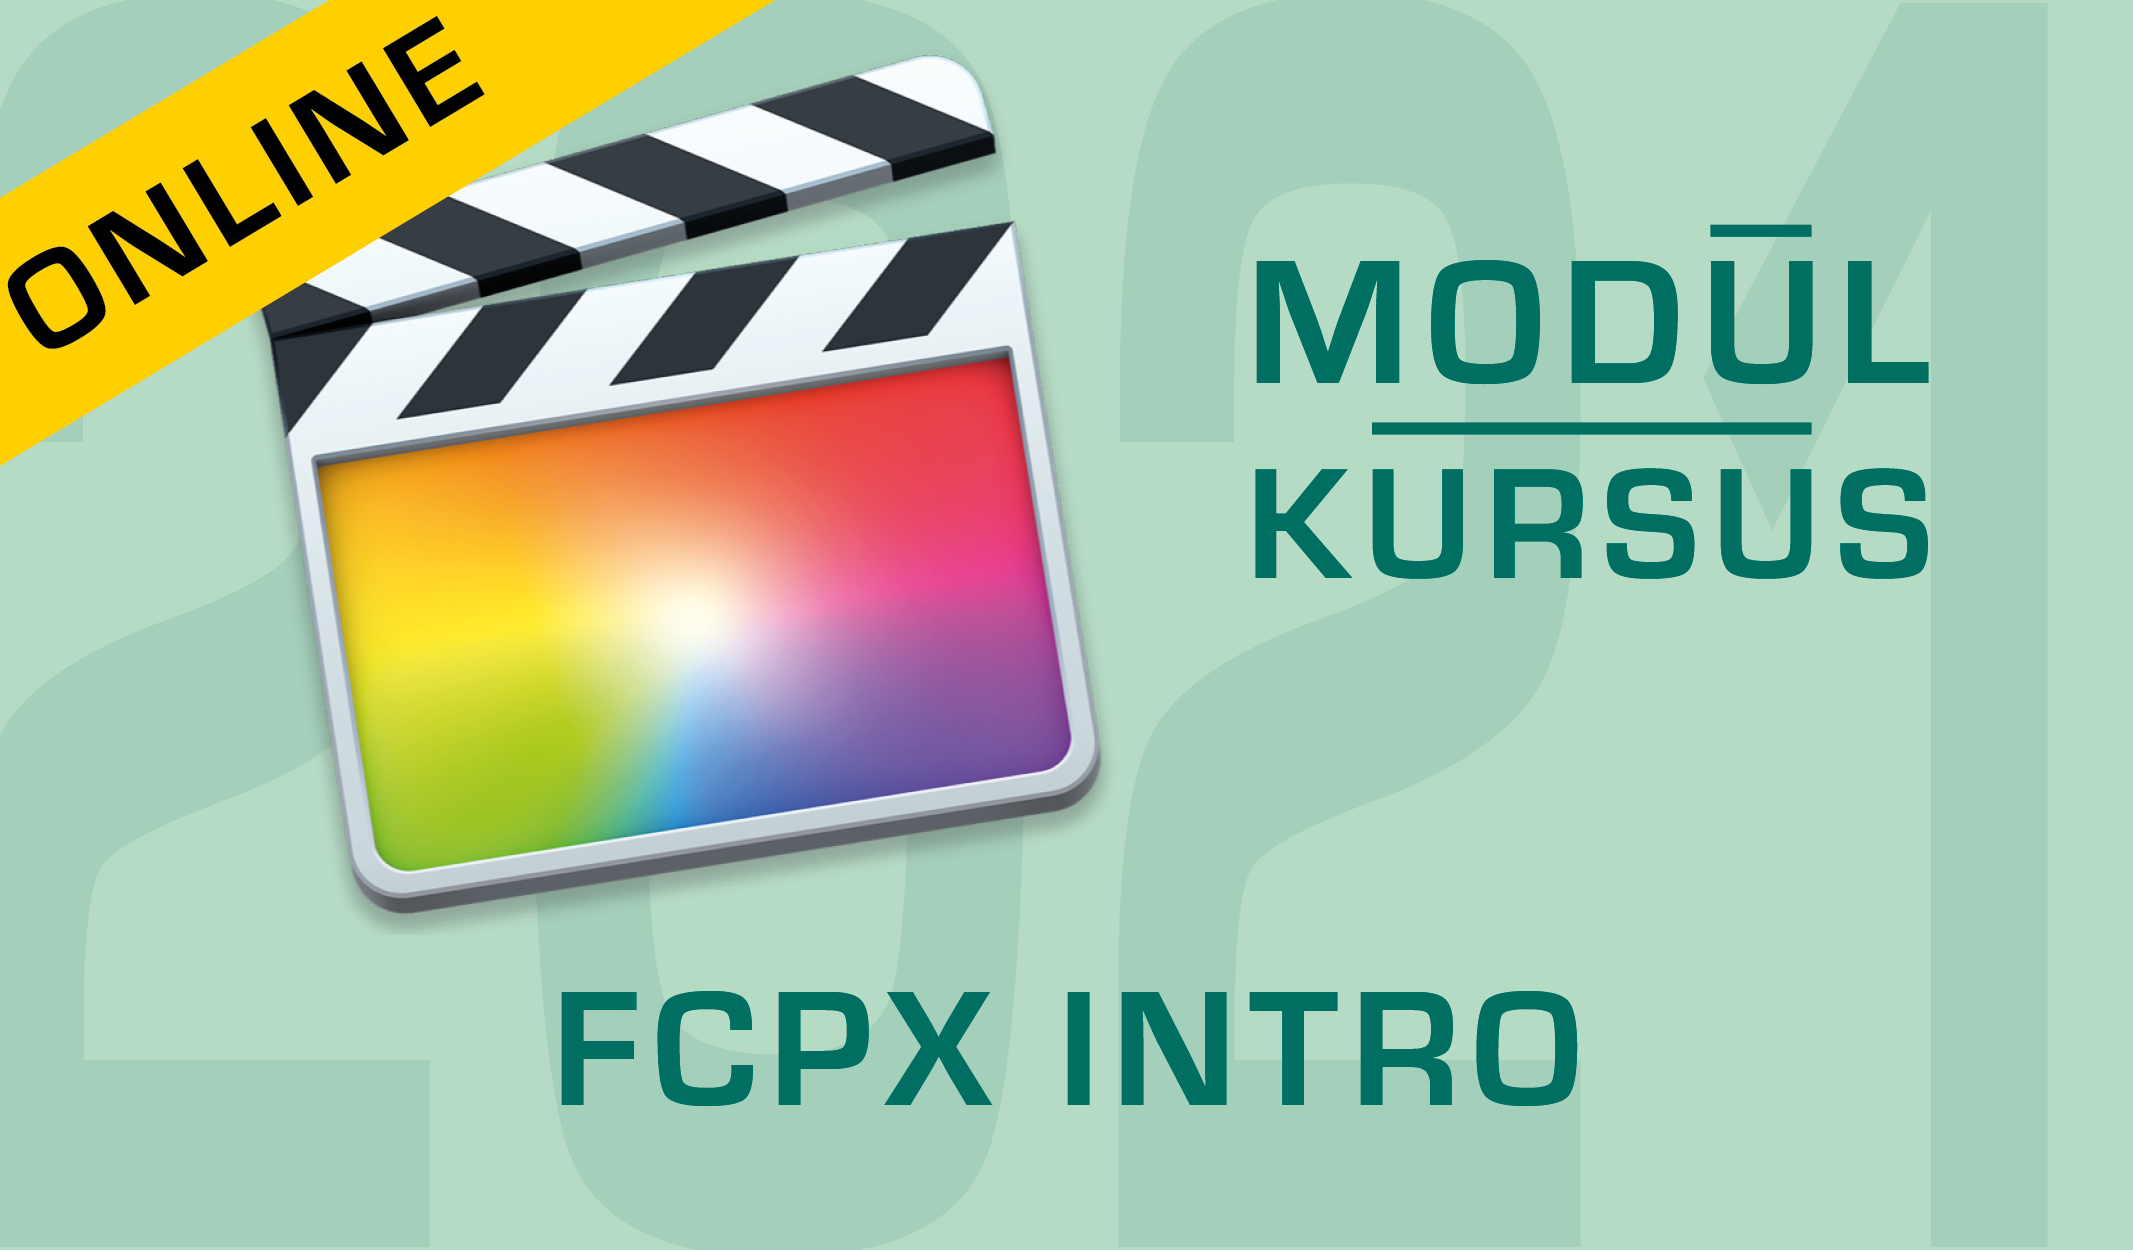 Videoredigering med Final Cut Pro X - Intro